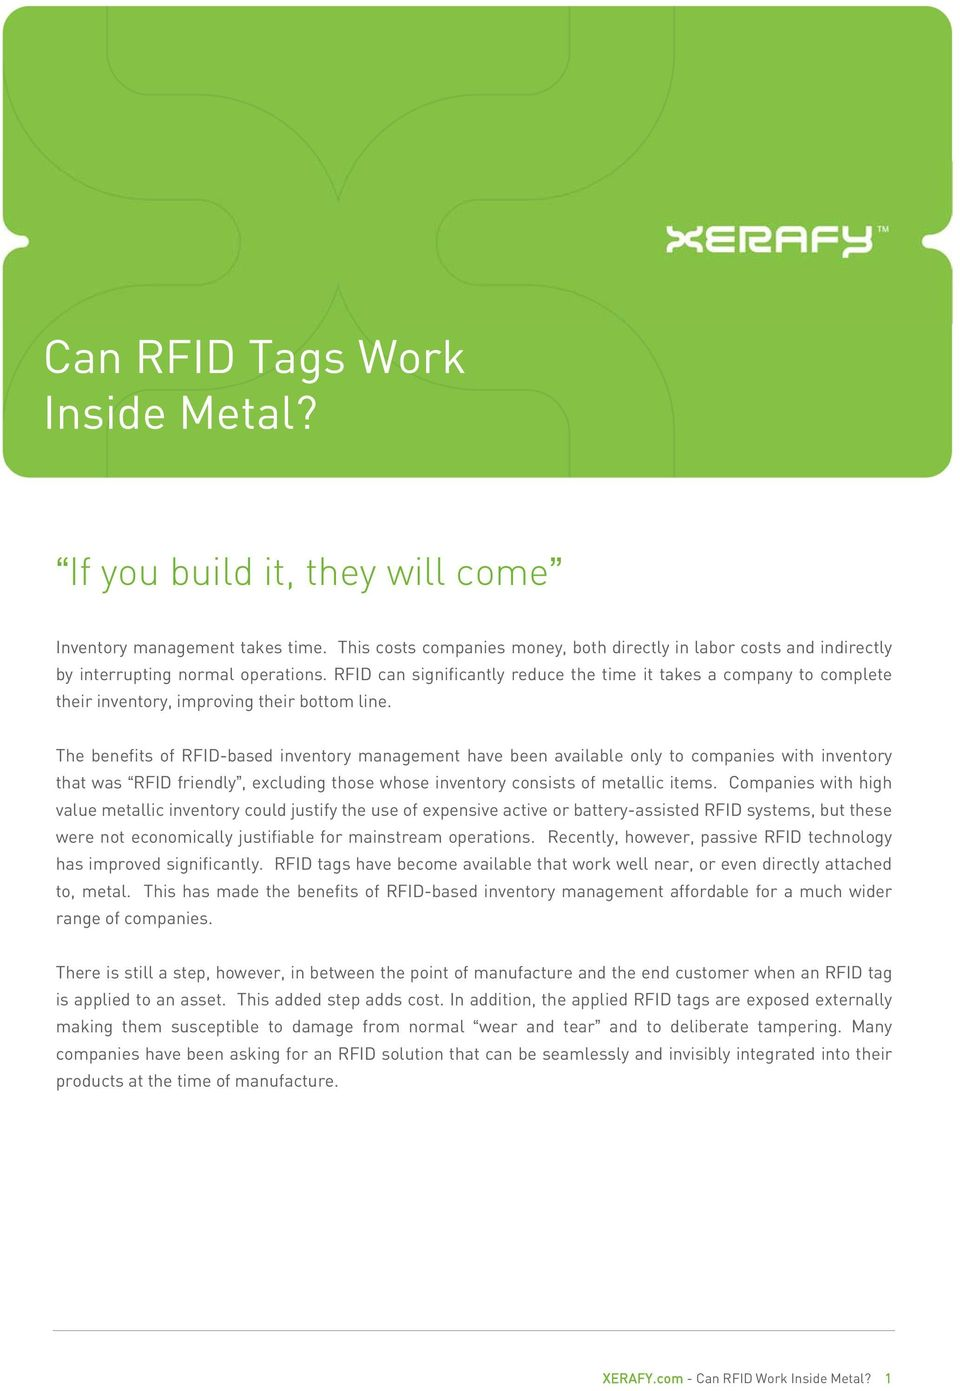 RFID can significantly reduce the time it takes a company to complete their inventory, improving their bottom line.